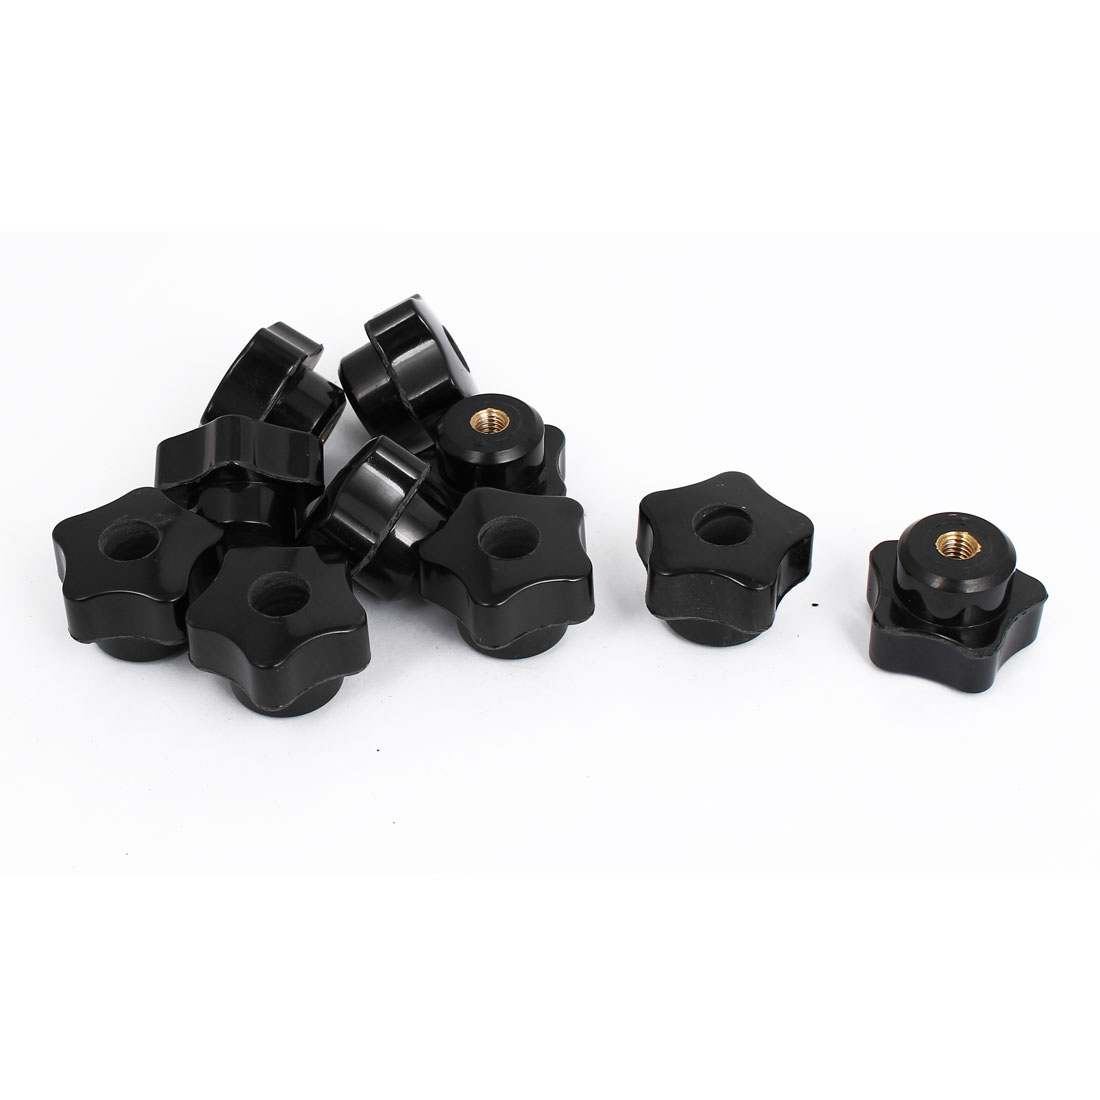 M6 Female Thread 32mm Star Head Dia Plastic Clamping Knob 10pcs